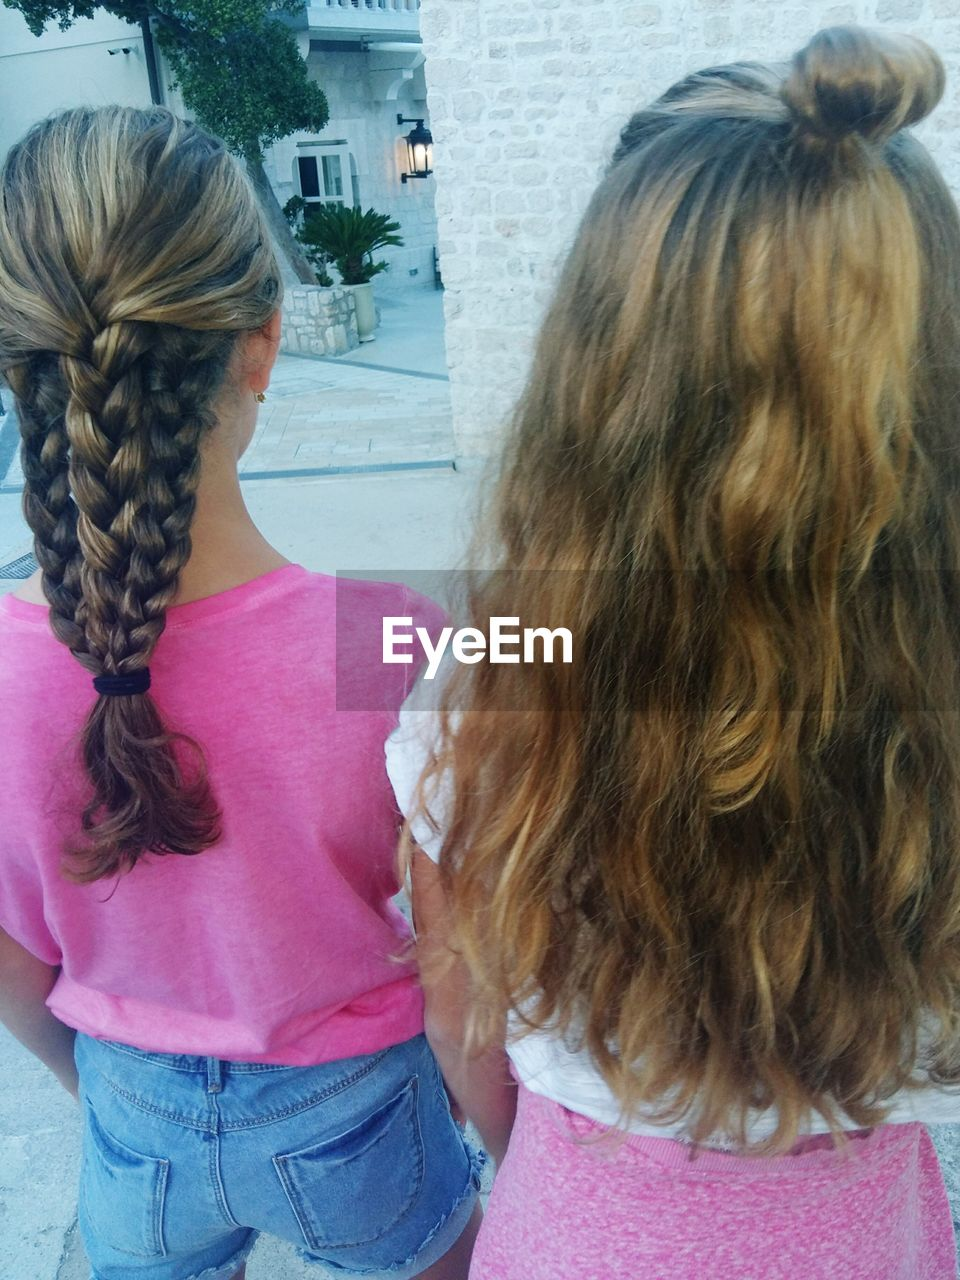 women, hair, hairstyle, rear view, females, girls, child, real people, casual clothing, lifestyles, adult, two people, long hair, leisure activity, people, family, childhood, standing, togetherness, day, pink color, human hair, daughter, teenager, innocence, sister